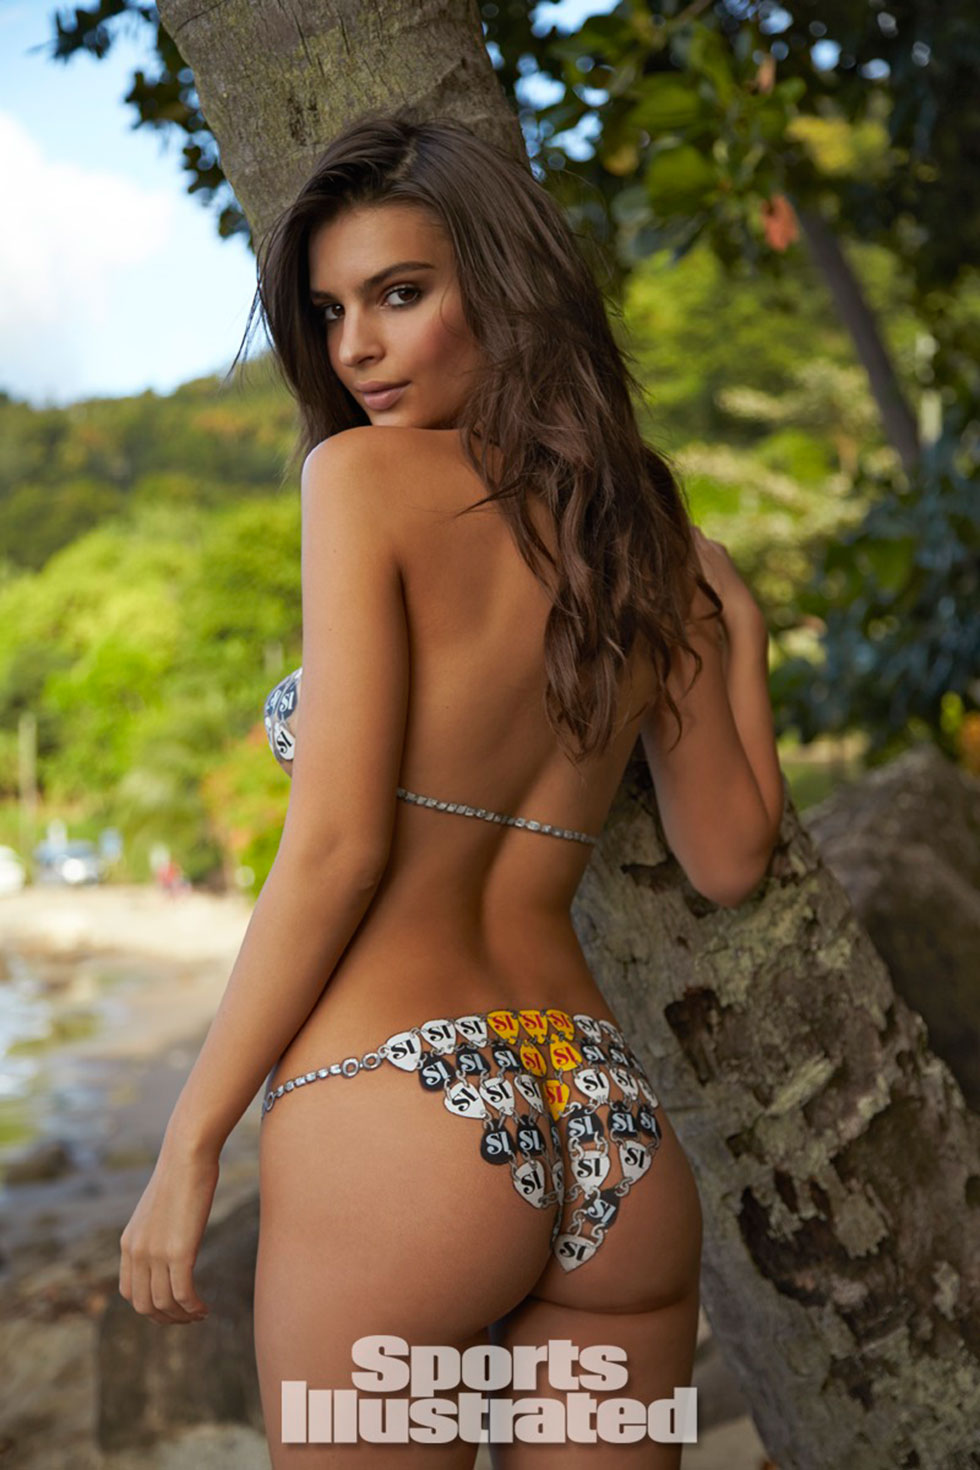 Emily-Ratajkowski-for-Sports-Illustrated-Swimsuit-Edition-2014_03